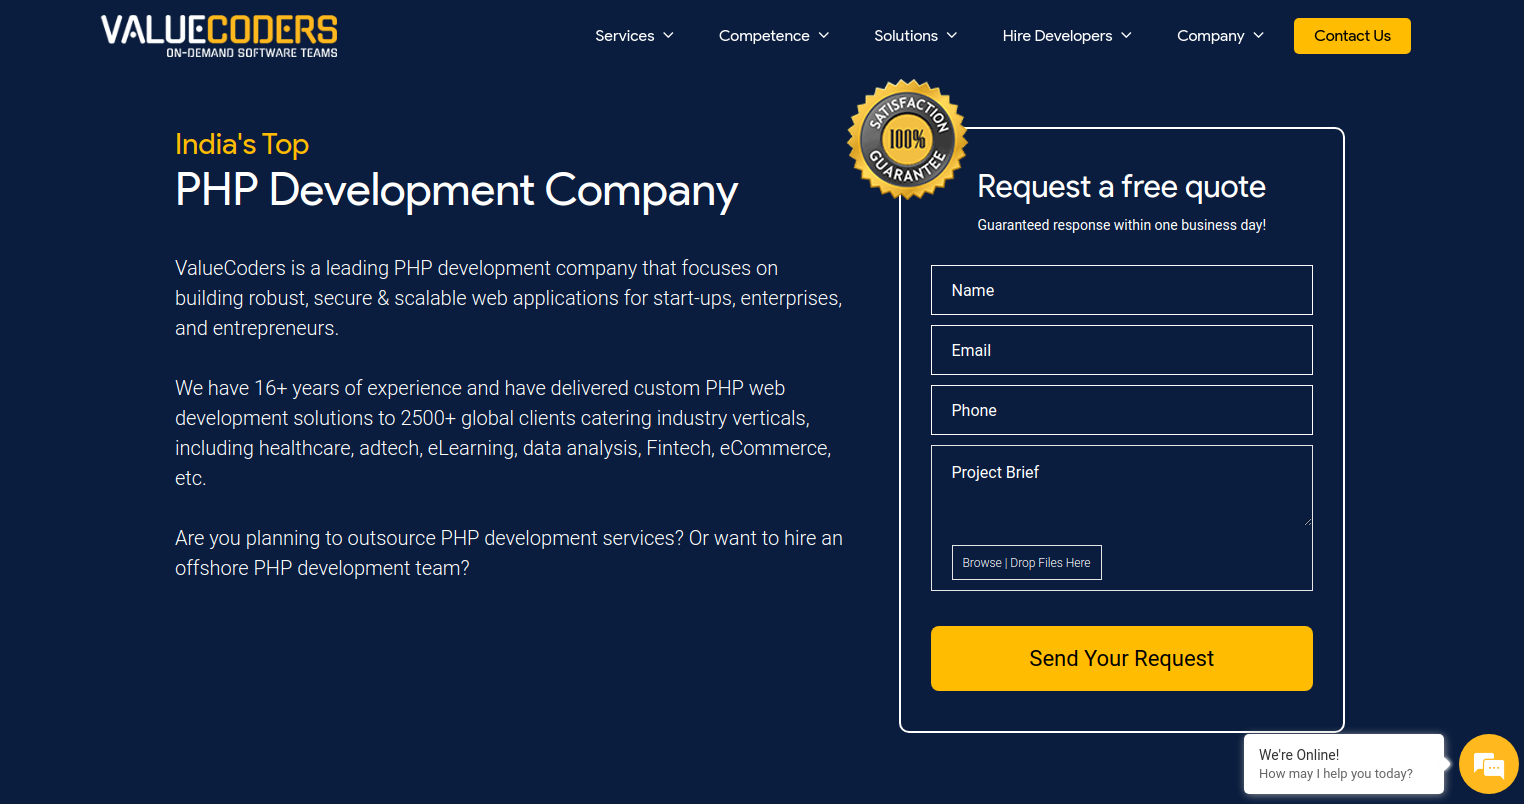 Top 5 PHP Web Development Companies in 2021 | hire dedicated php developers | hire php programmer | hire php coders | hire php developer India | hire php web developer | TopPHPWebAppDevelopmentCompanies|TopPHPwebsitedevelopmentCompany|ListoftheBestPHPwebsiteDevelopmentCompany|TopRated| LeadingPHPwebDevelopmentServices